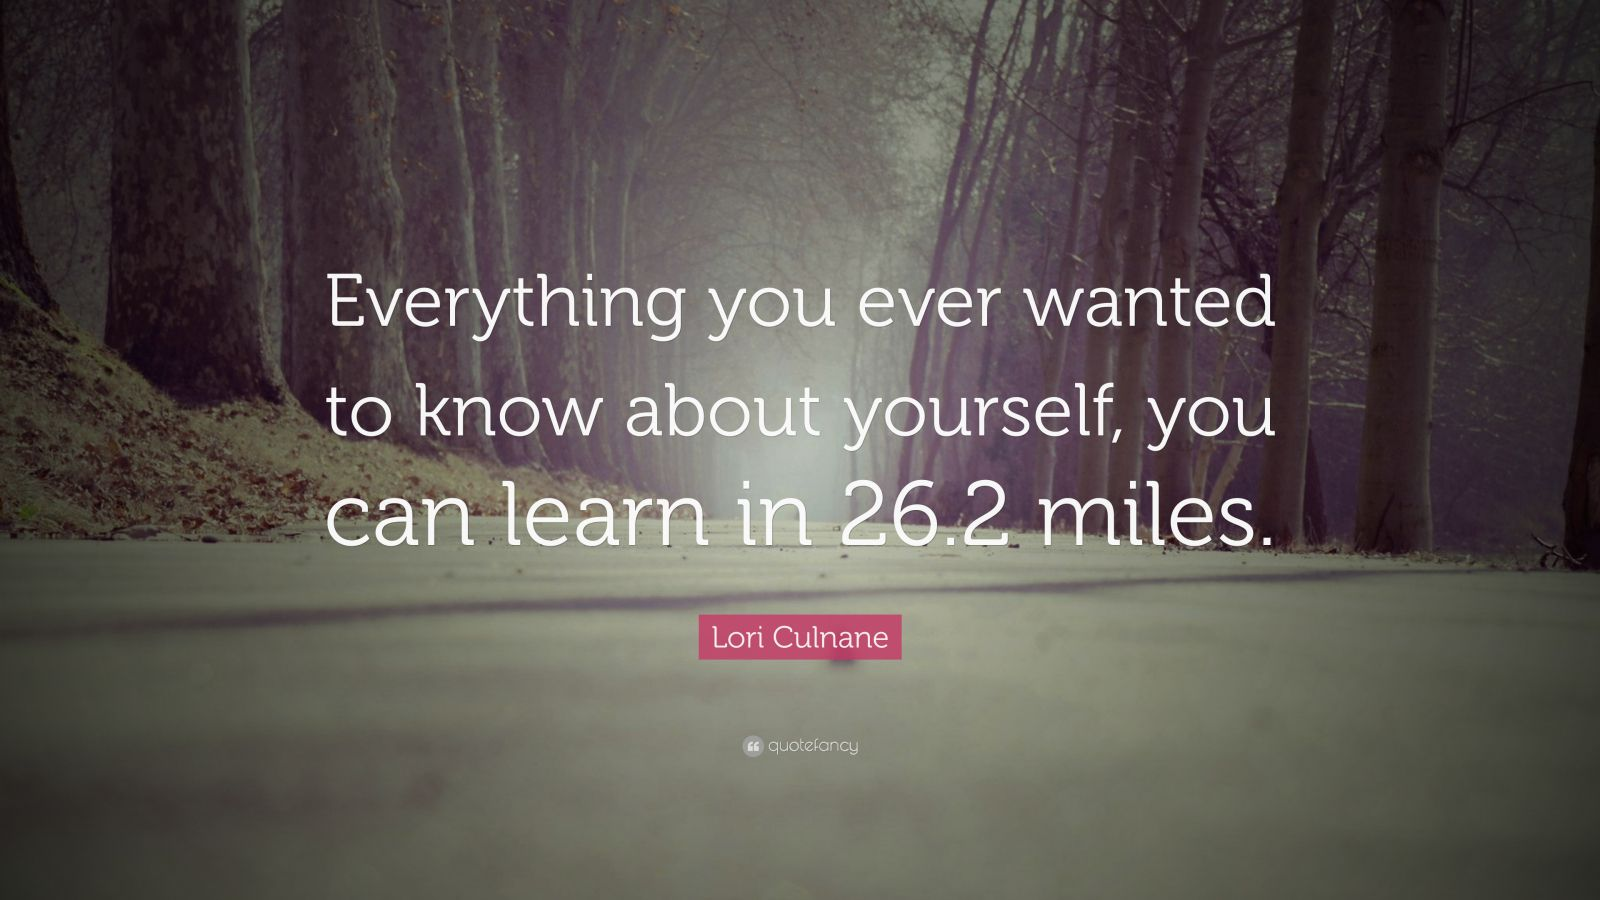 "Lori Culnane Quote: ""Everything you ever wanted to know about yourself, you can learn in 26.2 miles."""